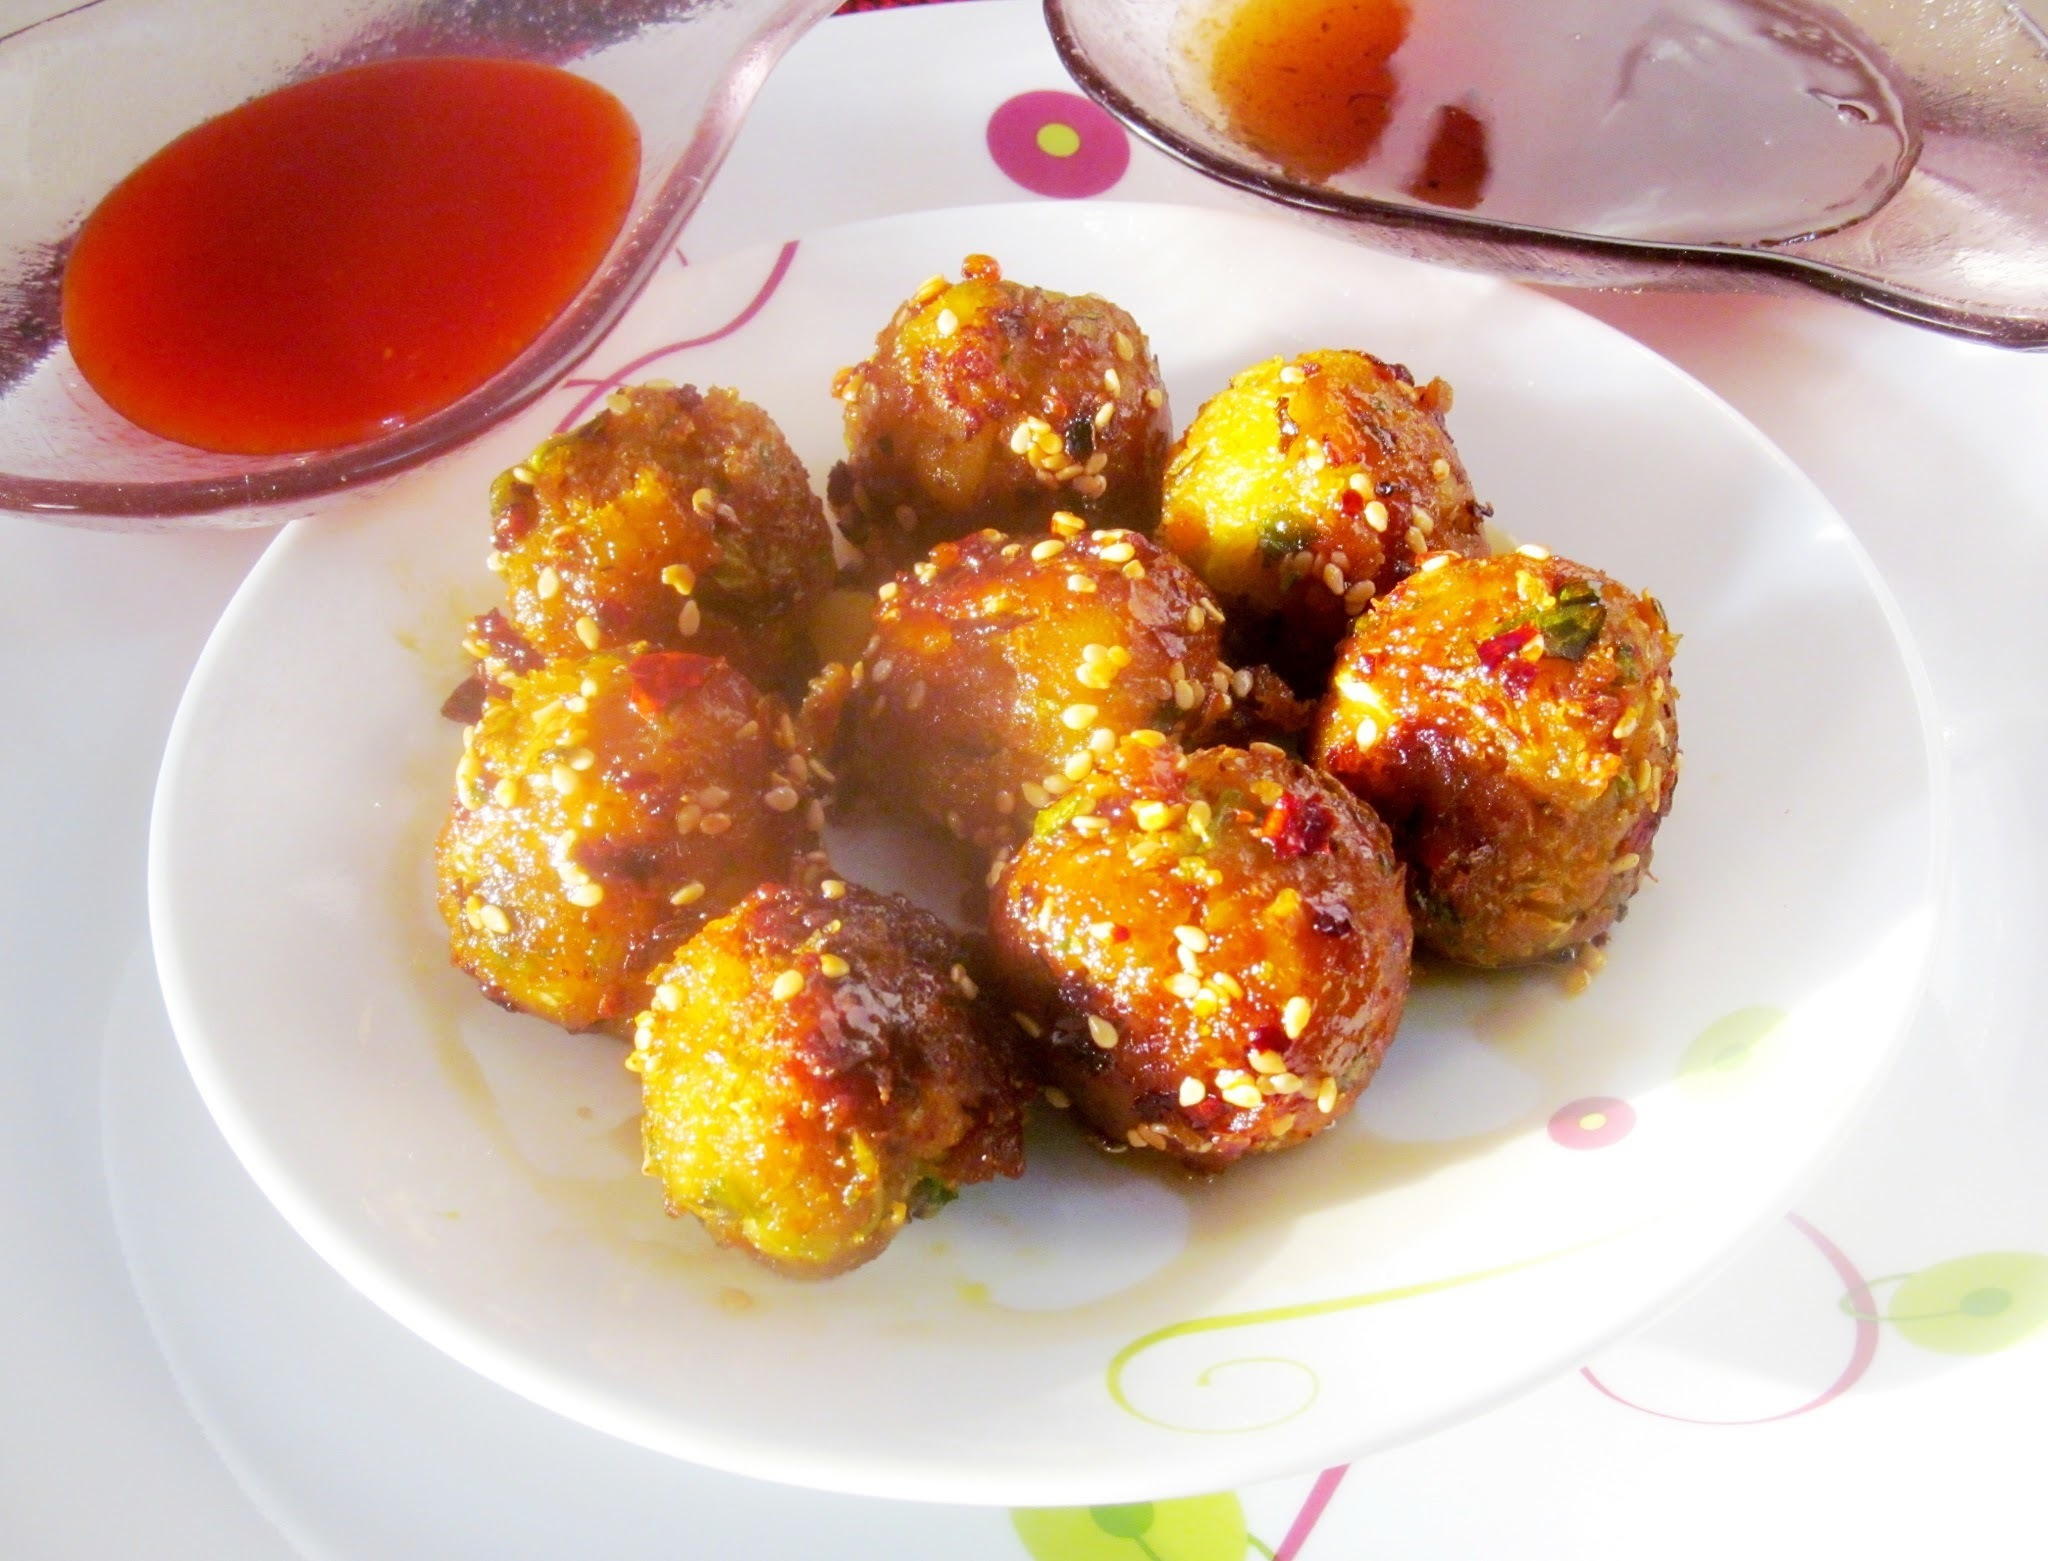 Honey coated vegetable balls